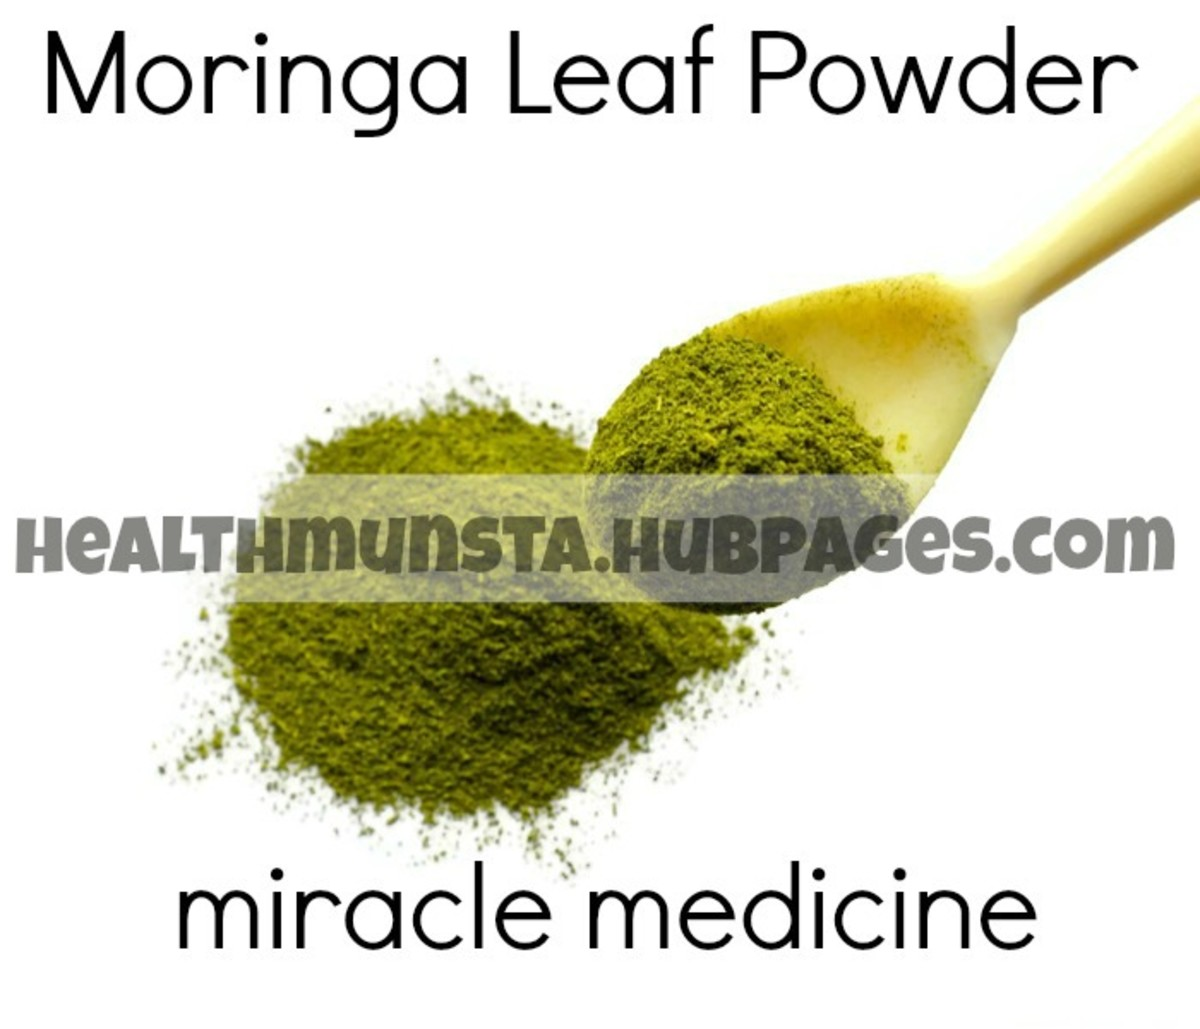 10 Miracle Moringa Leaf Powder Uses